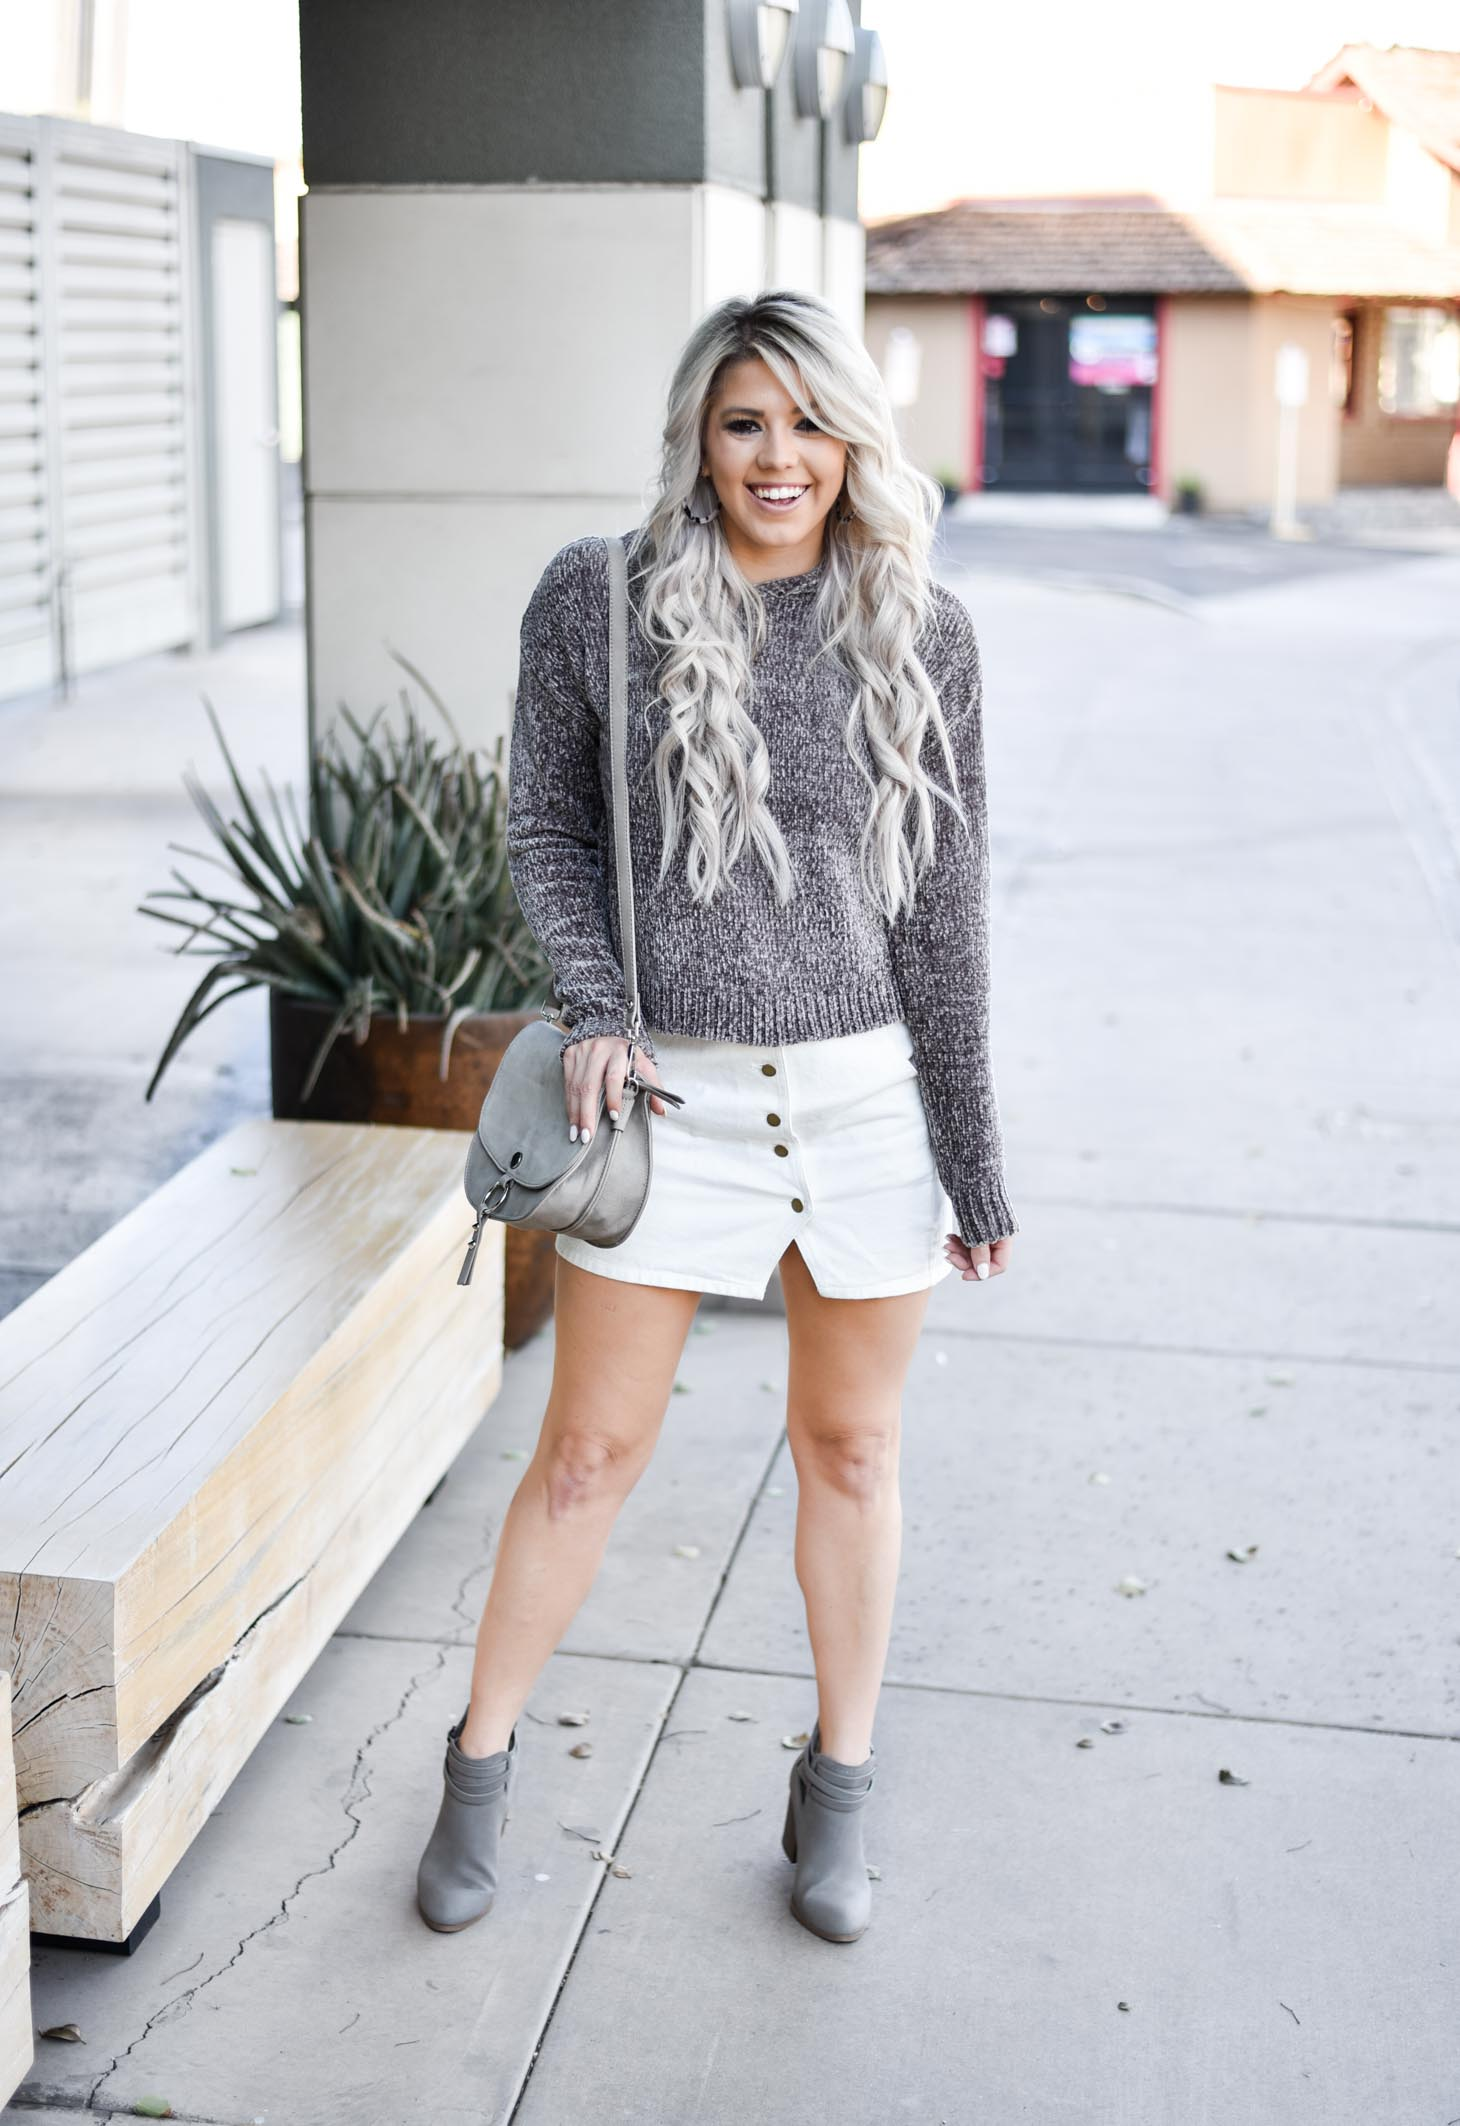 Erin Elizabeth of Wink and a Twirl shares a fall look from Red Dress Boutique with a cute hooded sweater and white miniskirt